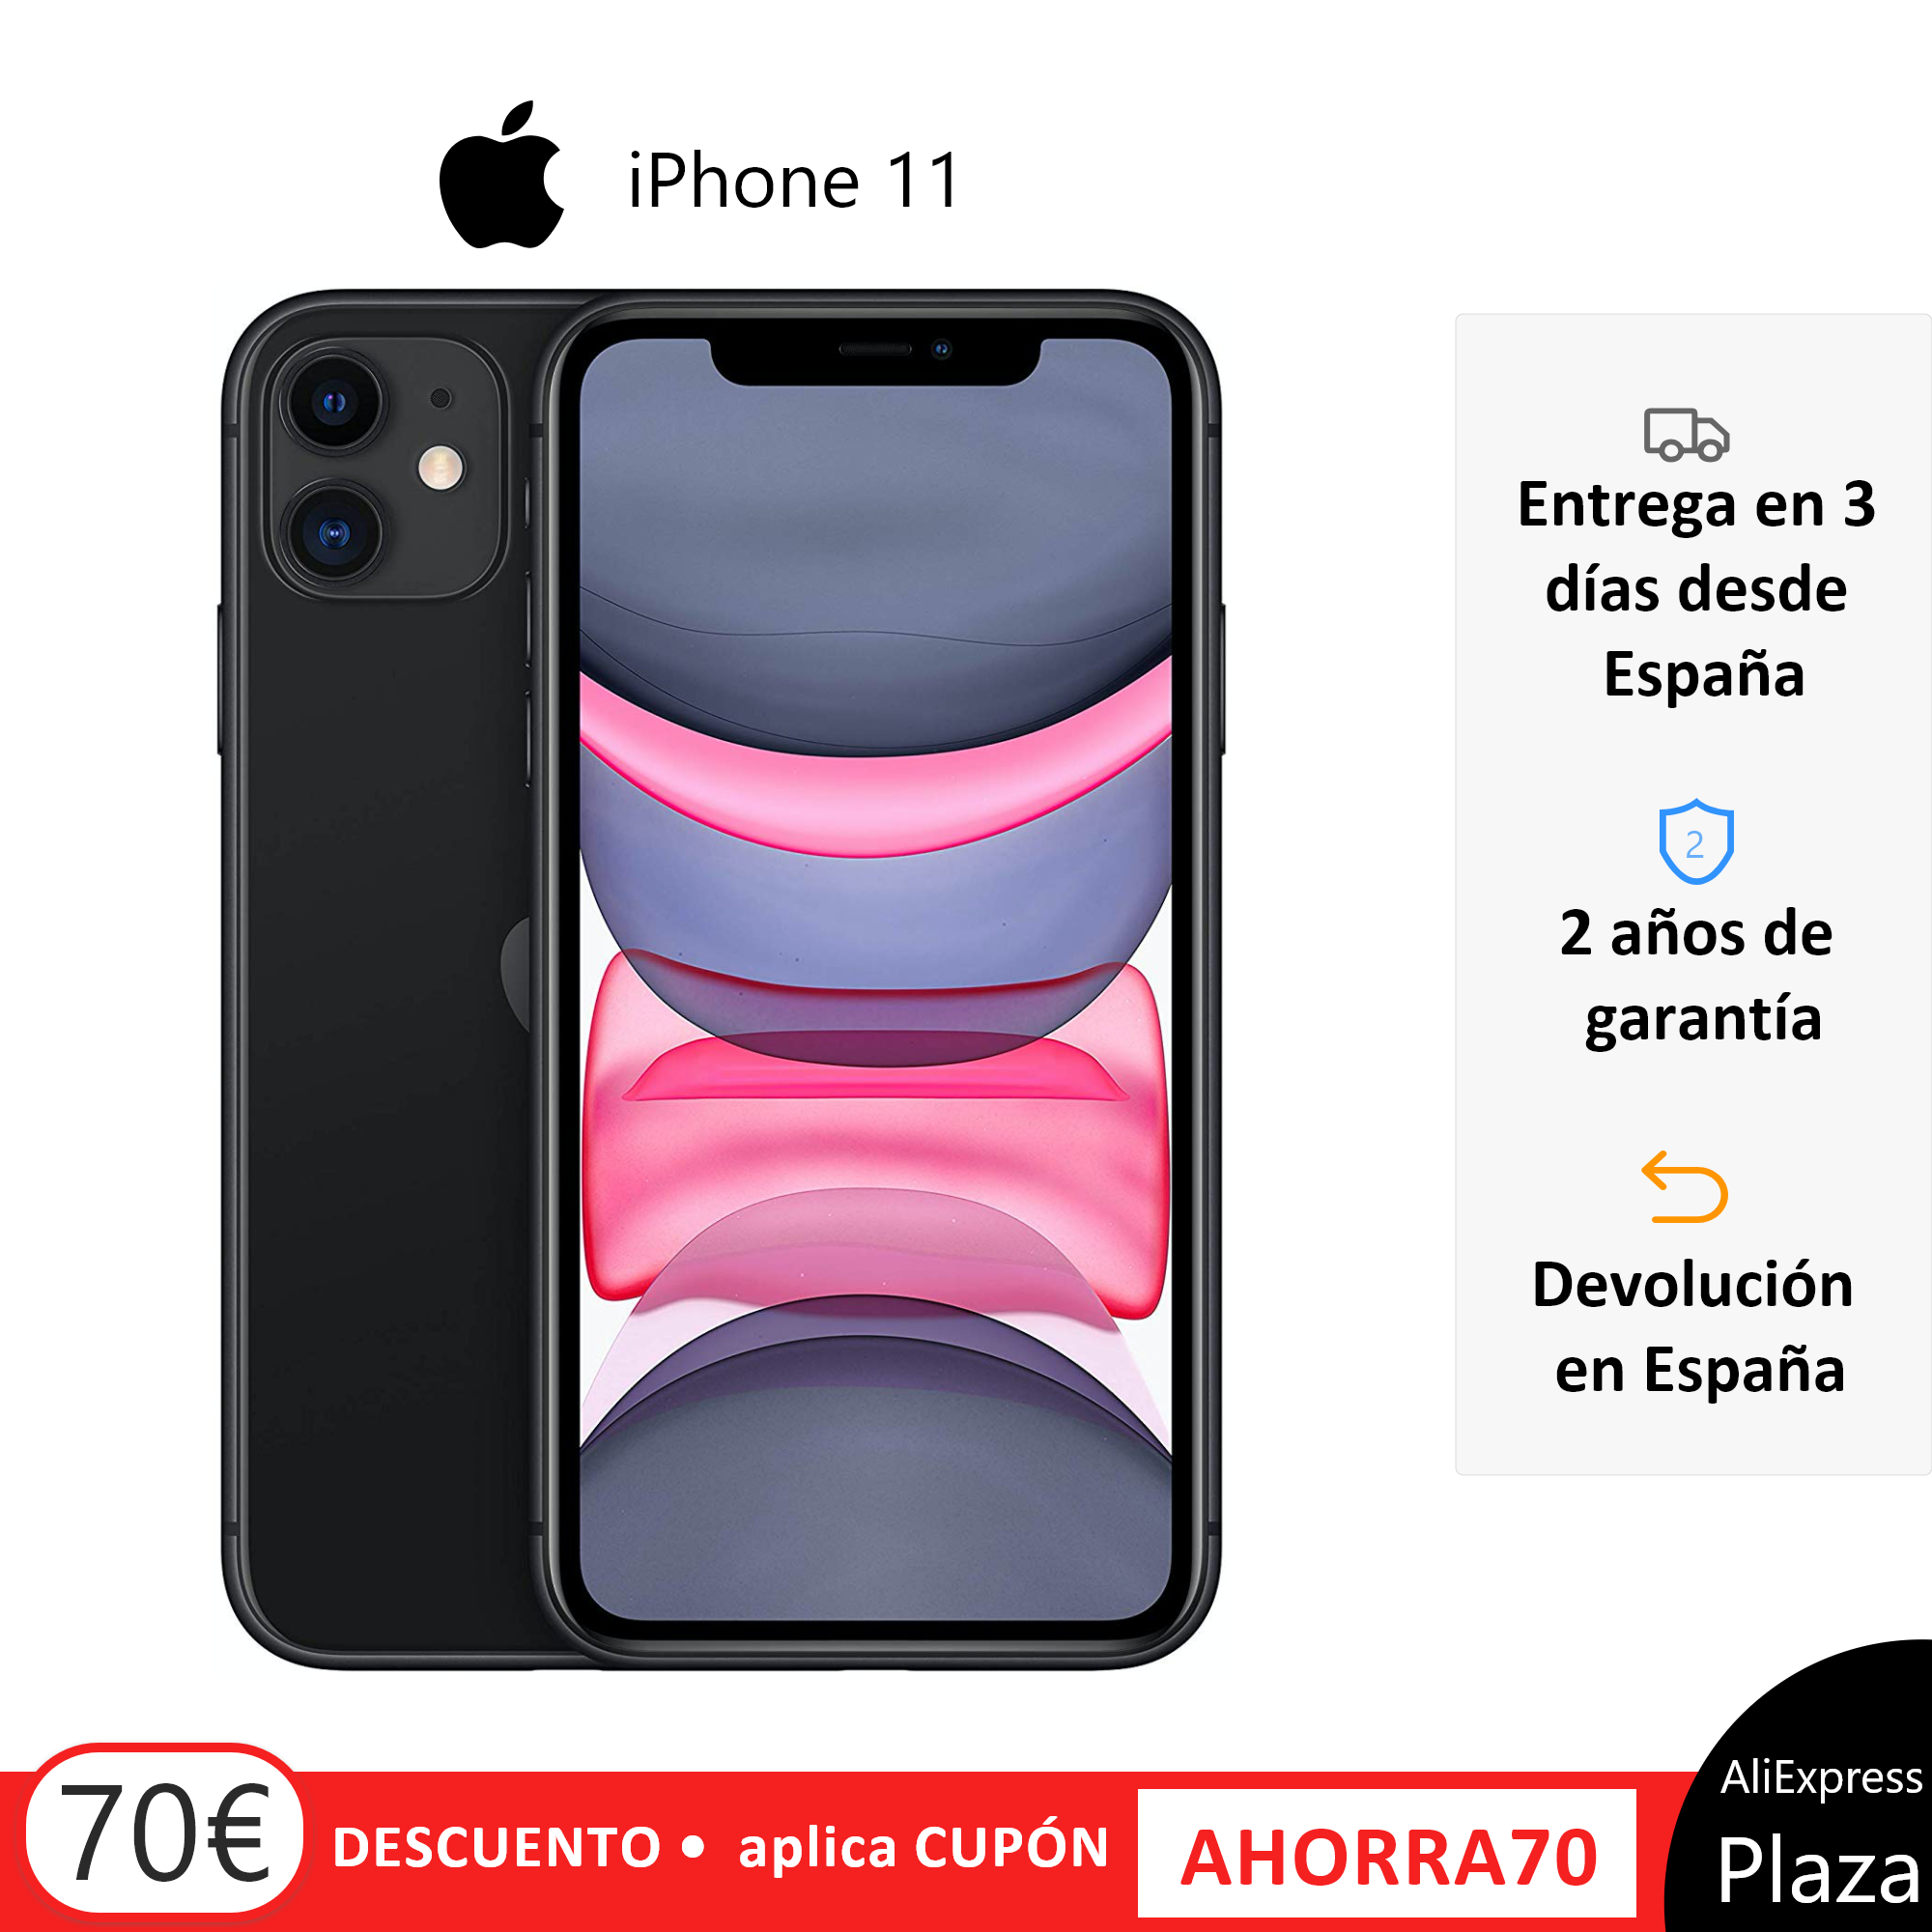 Apple iPhone 11 <font><b>Smartphone</b></font> (64 GB ROM, 4 GB <font><b>RAM</b></font>, Black Color, 12 MP Rear Camera, 12 MP Selfie Camera, 6.1